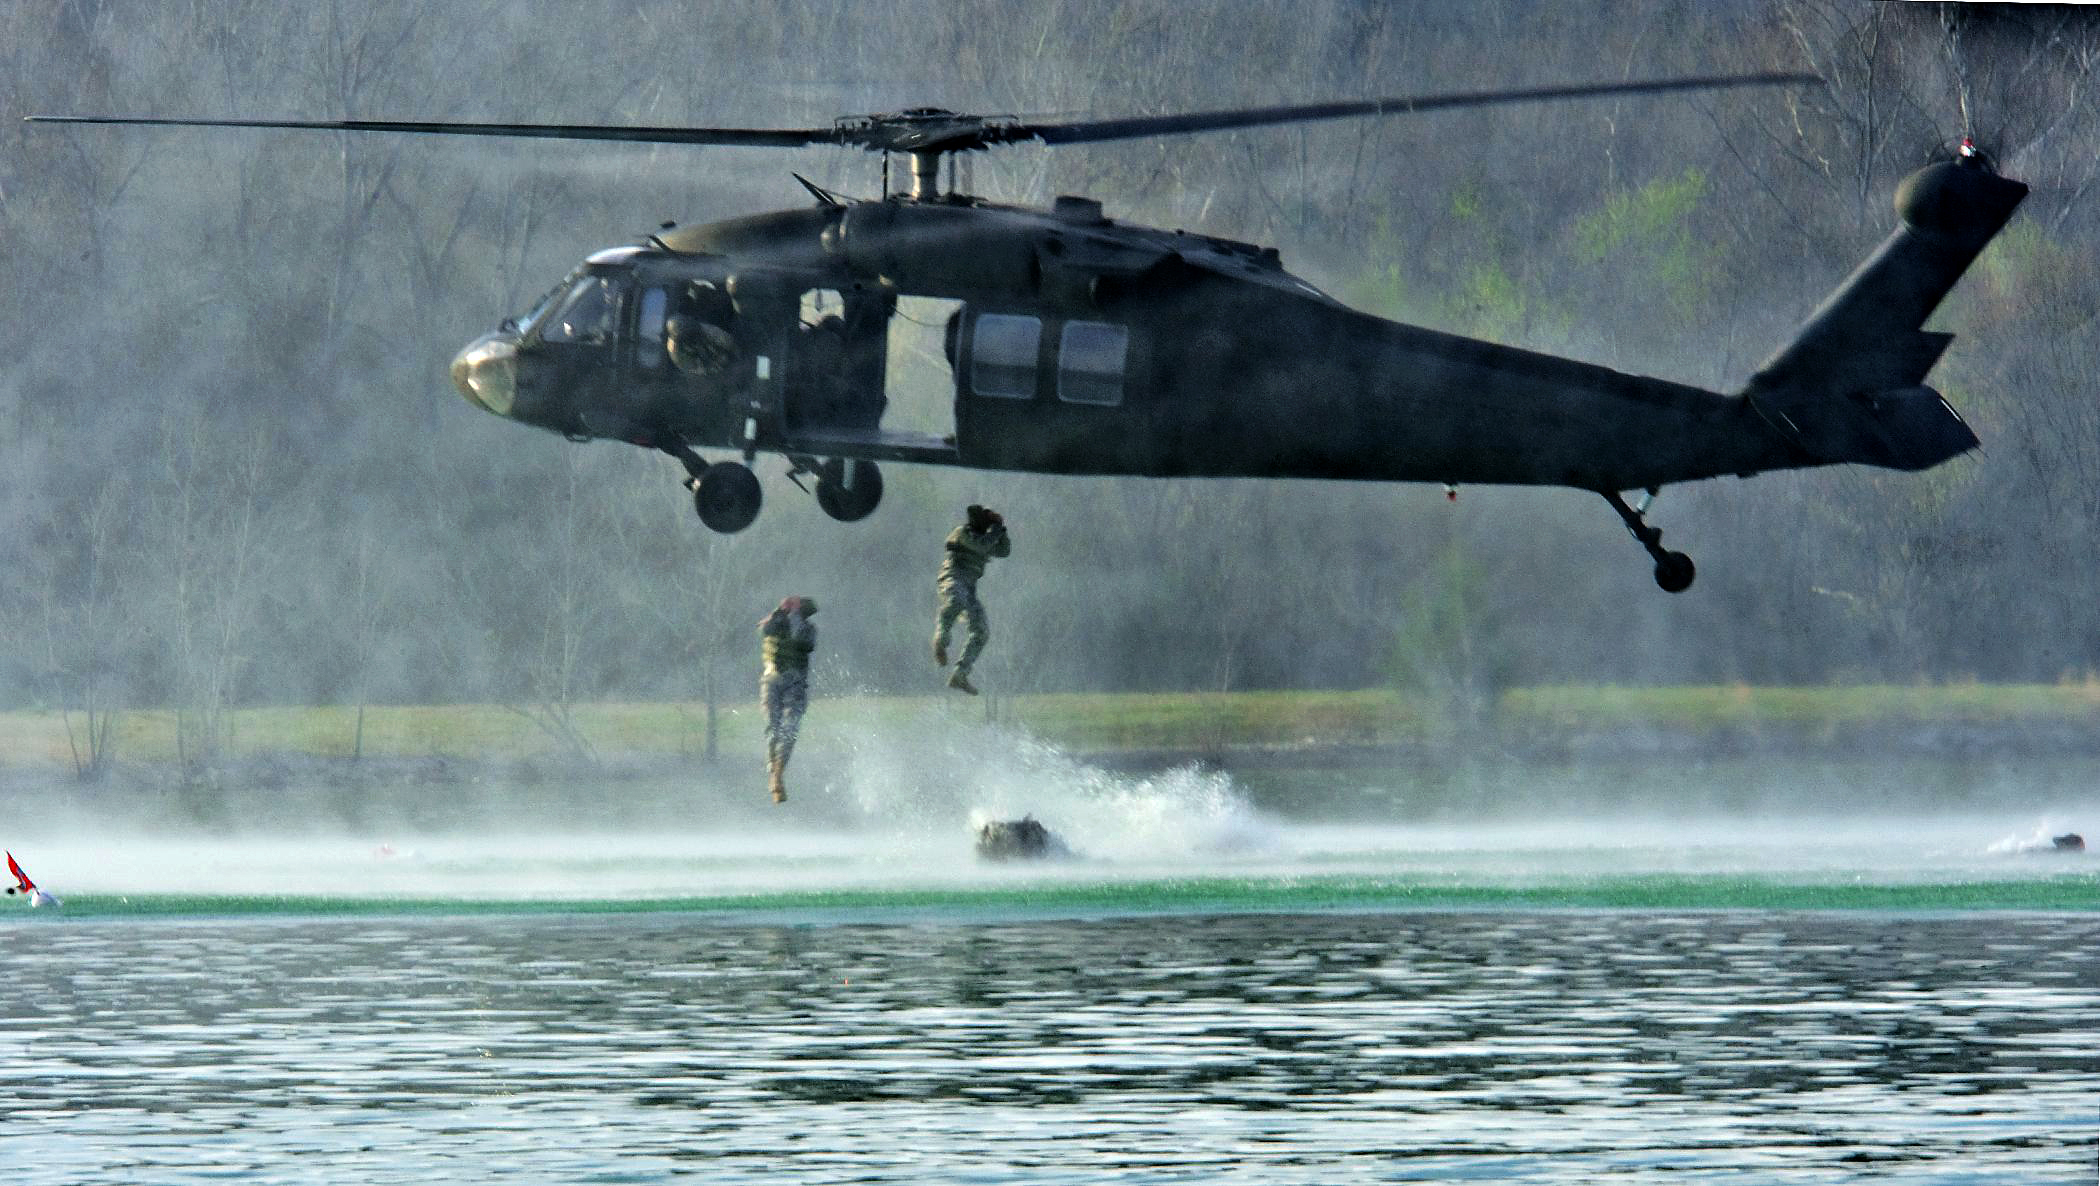 File:Defense.gov News Photo 110407-D-8594F-366 - U.S. Army engineers ... Army Helicopters In Action